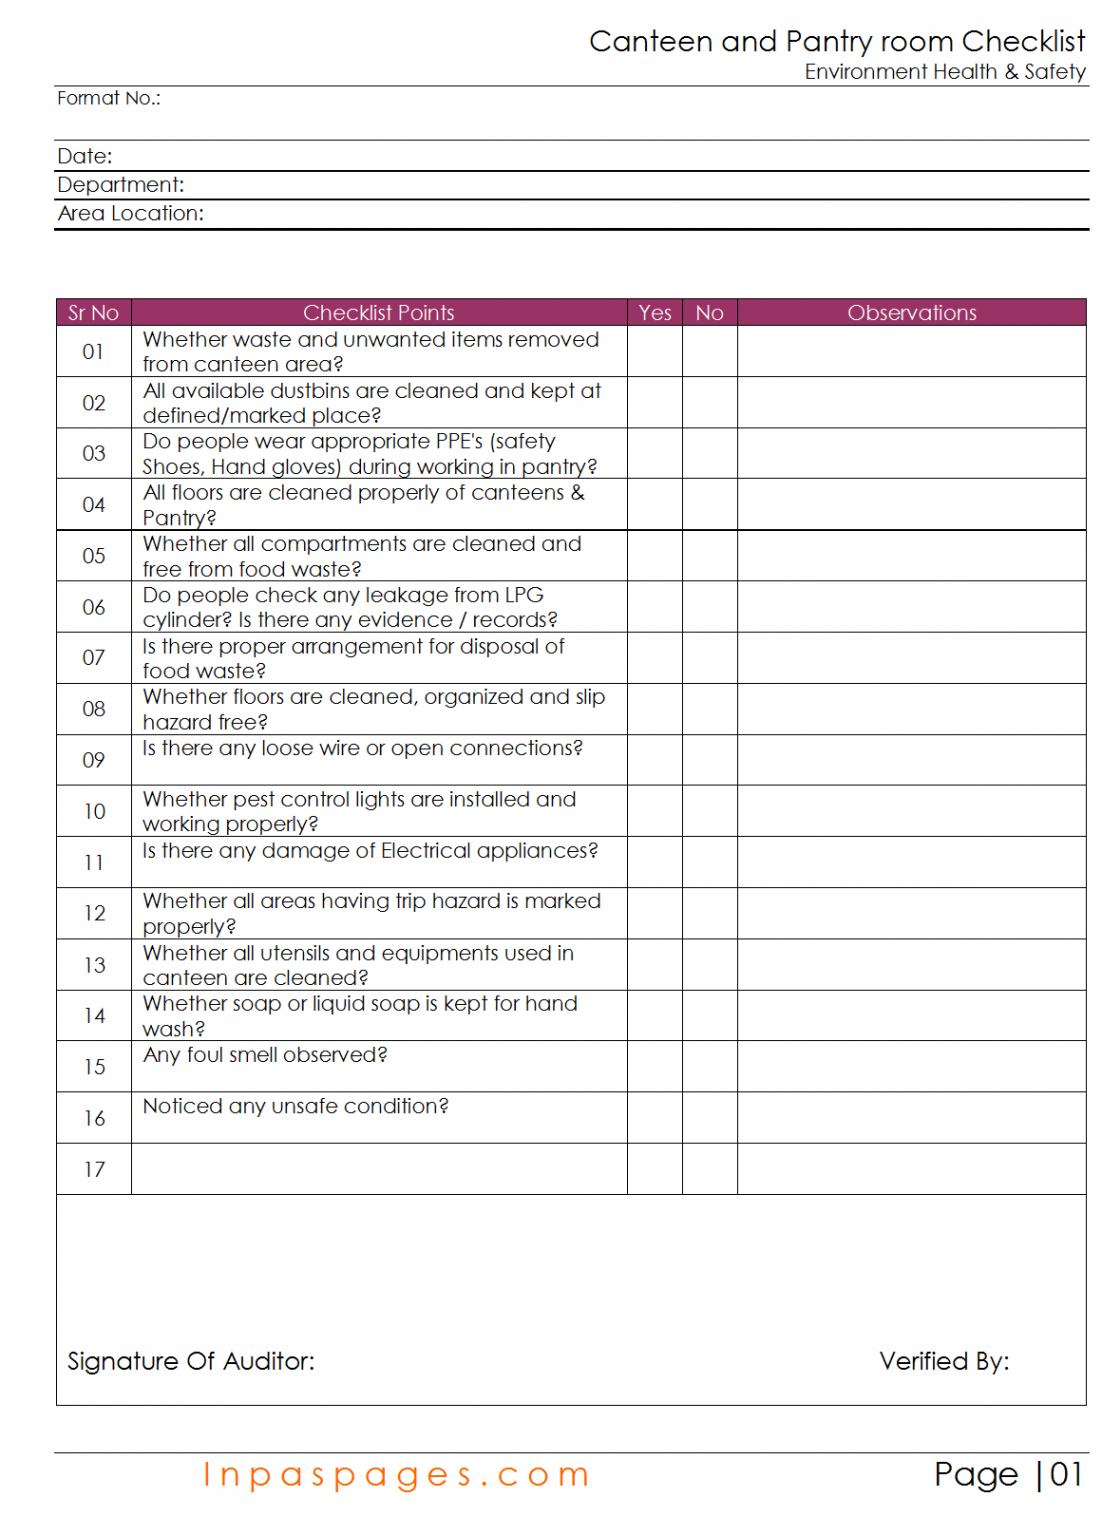 editable canteen and pantry room checklist food safety inspection checklist template excel